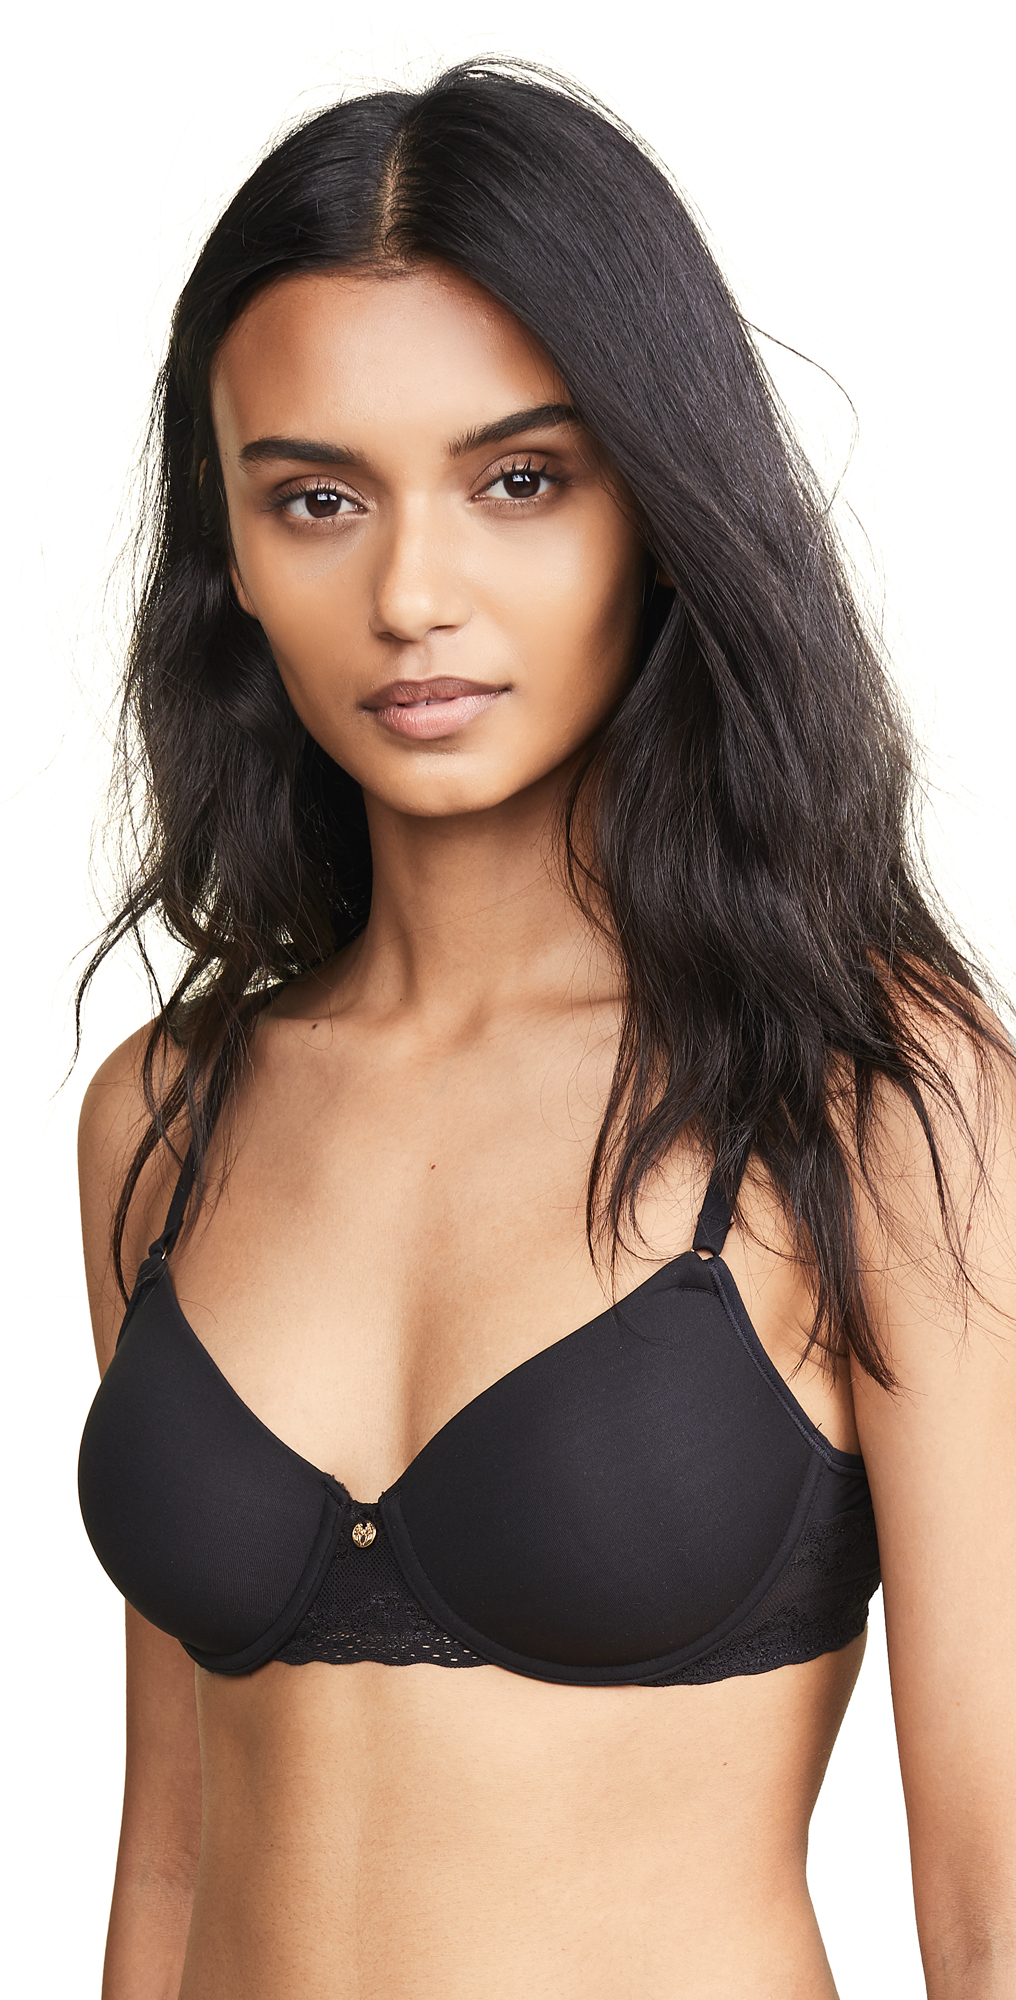 Natori Bliss Perfection Contour Underwire Bra